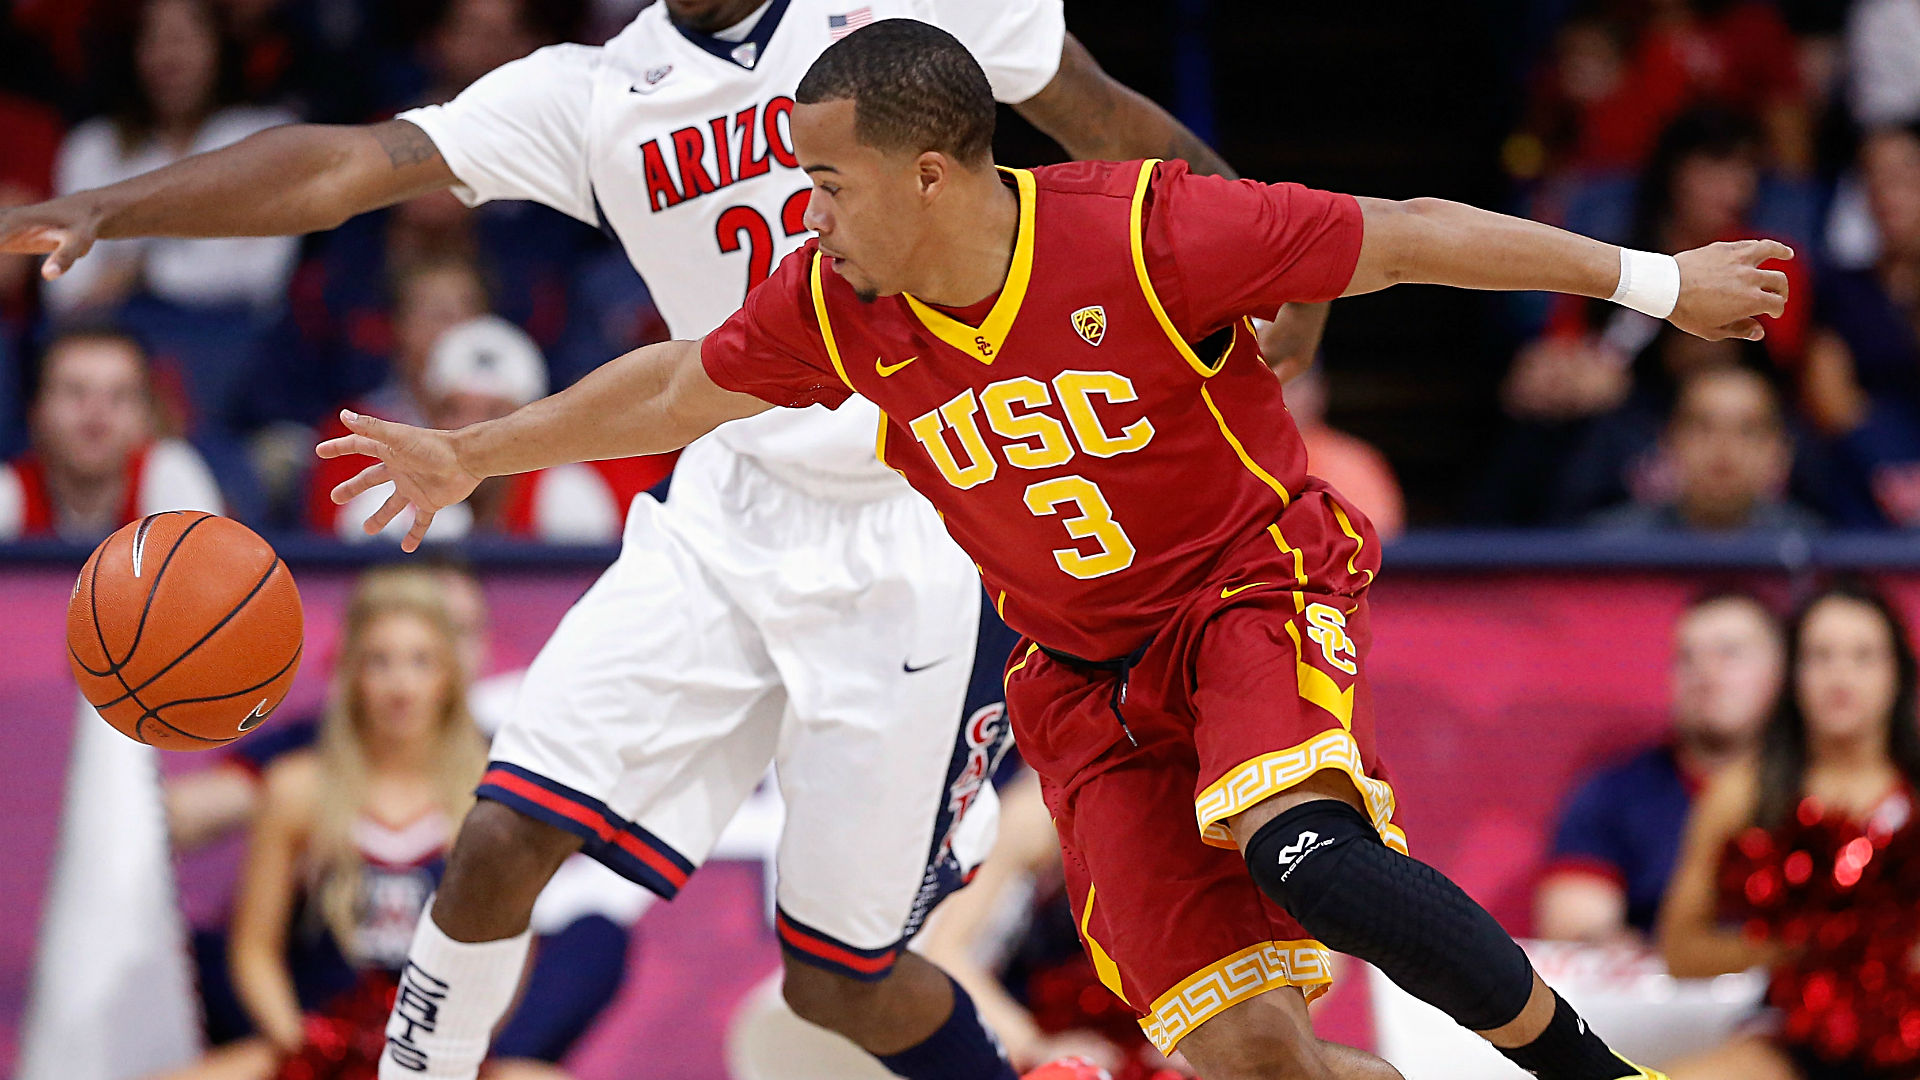 USC sends three players home for violating team rules ...